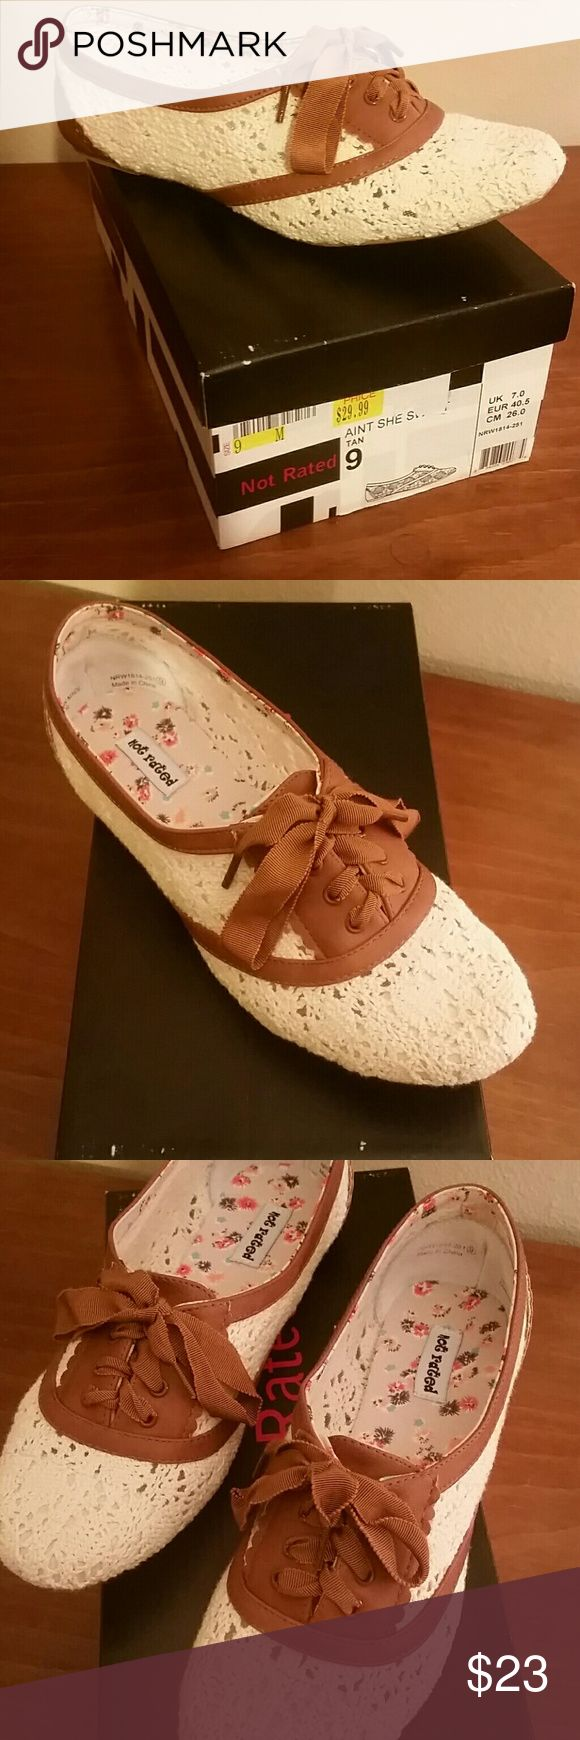 Not Rated Lace Shoe Brand New. Never Worn. Off White/Brown Lace Shoe. Perfect condition. Not Rated Shoes Moccasins